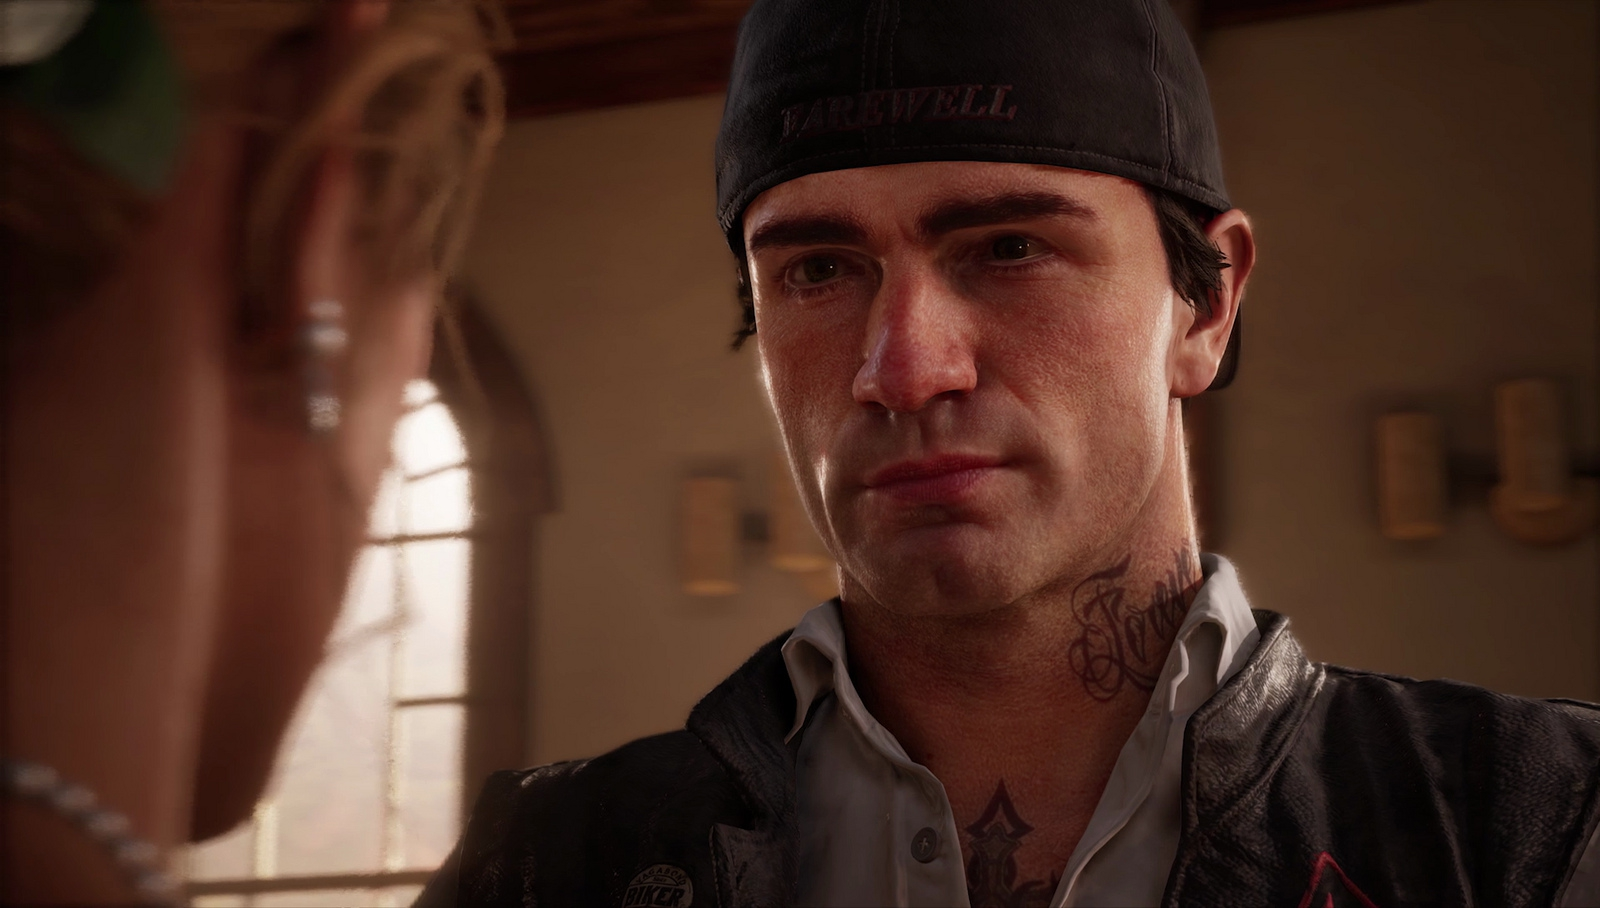 Days gone vi invita al matrimonio di Sarah e Deacon